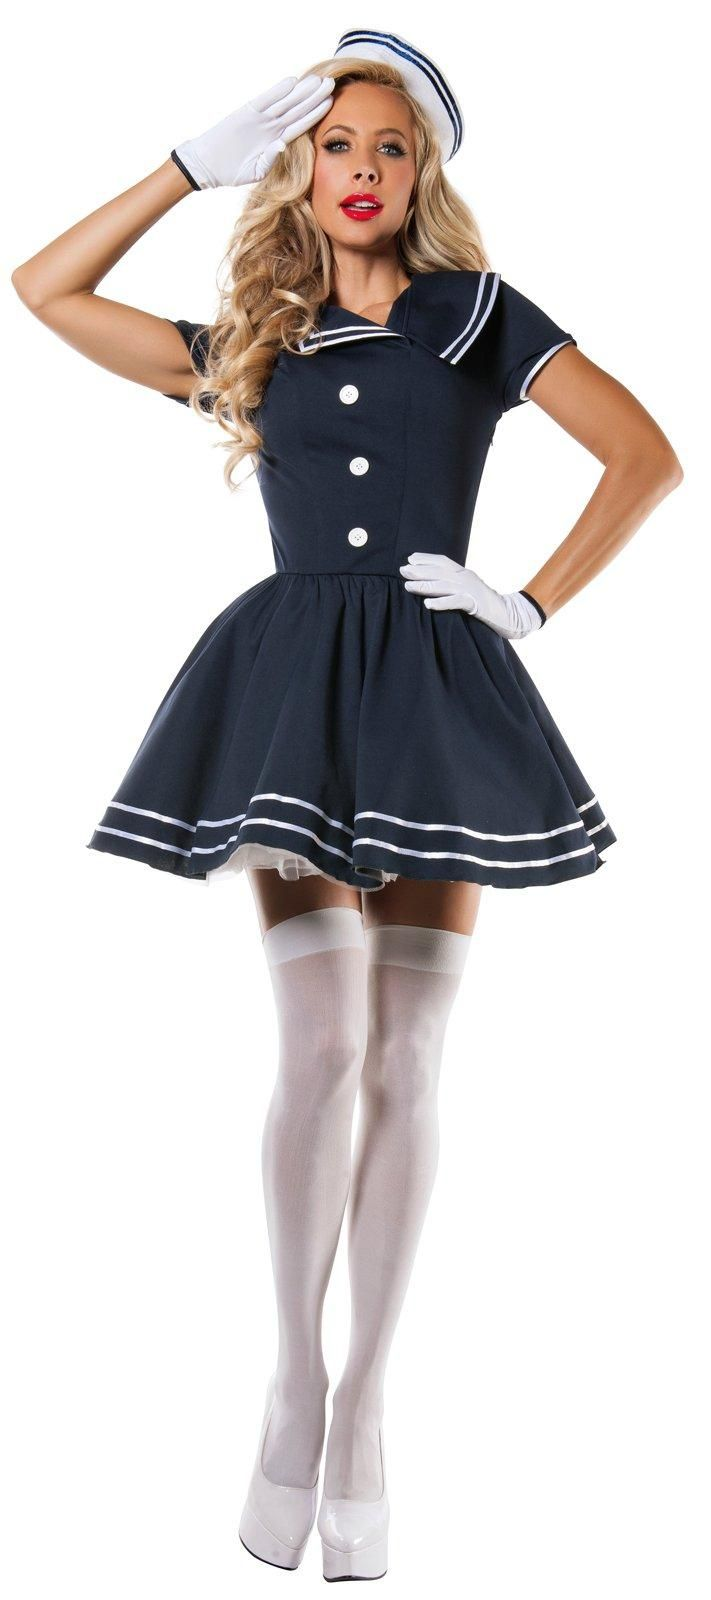 Black dress costume ideas - Sailor Captain Costume For Adults From Costumeexpress Com